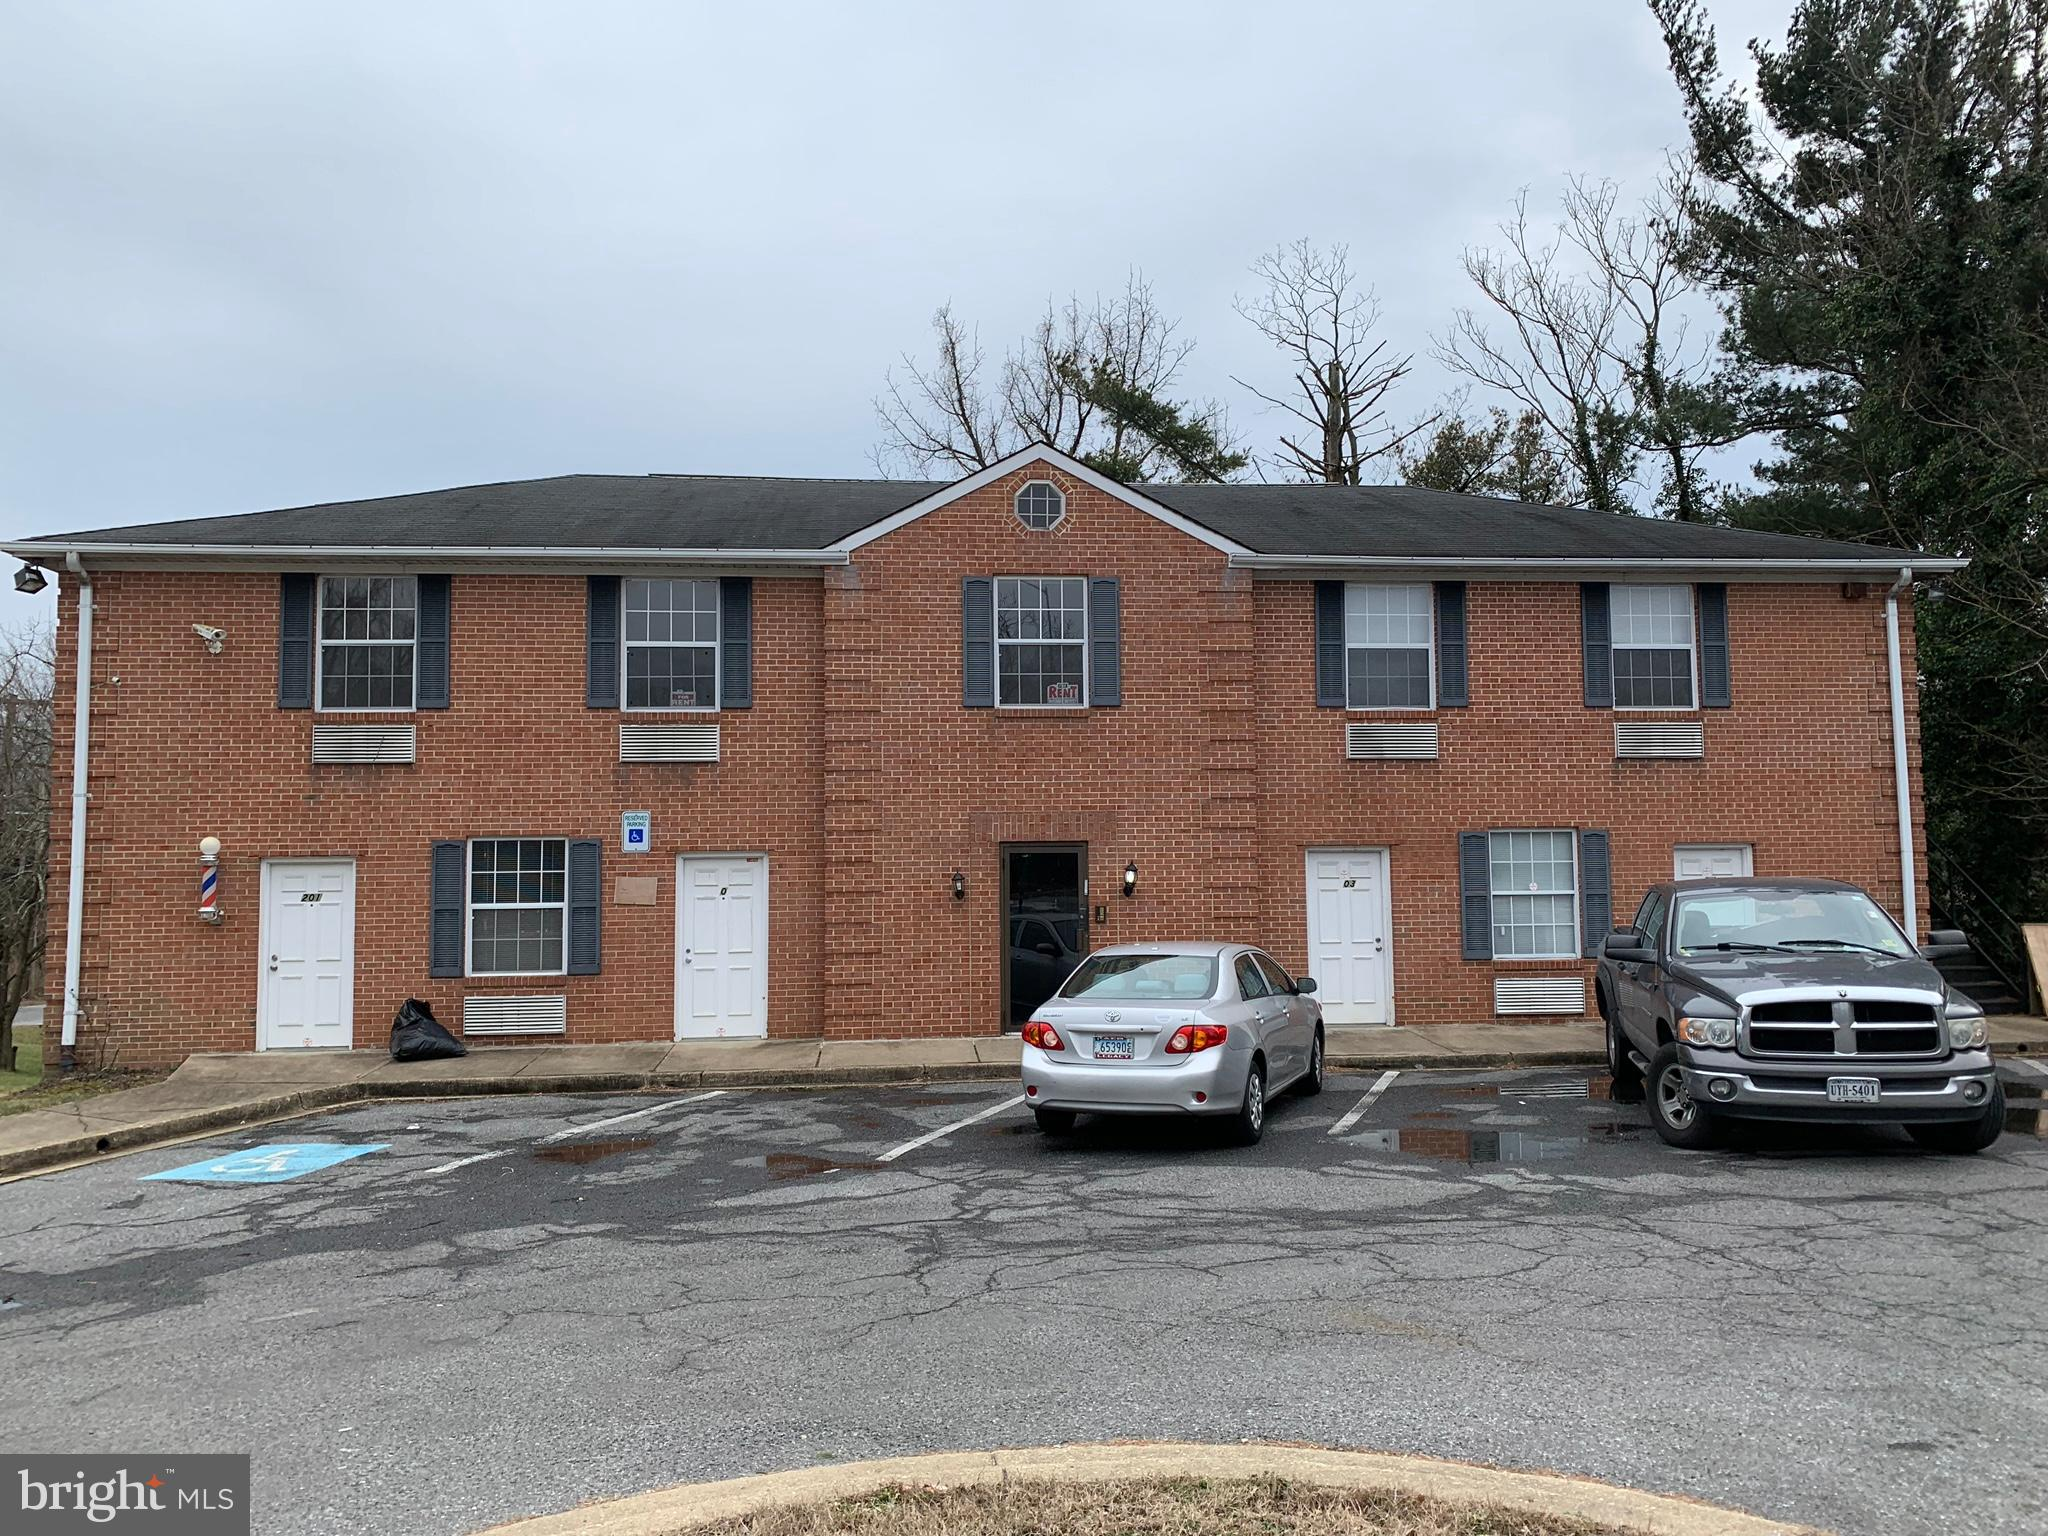 5121 HENDERSON ROAD, TEMPLE HILLS, MD 20748